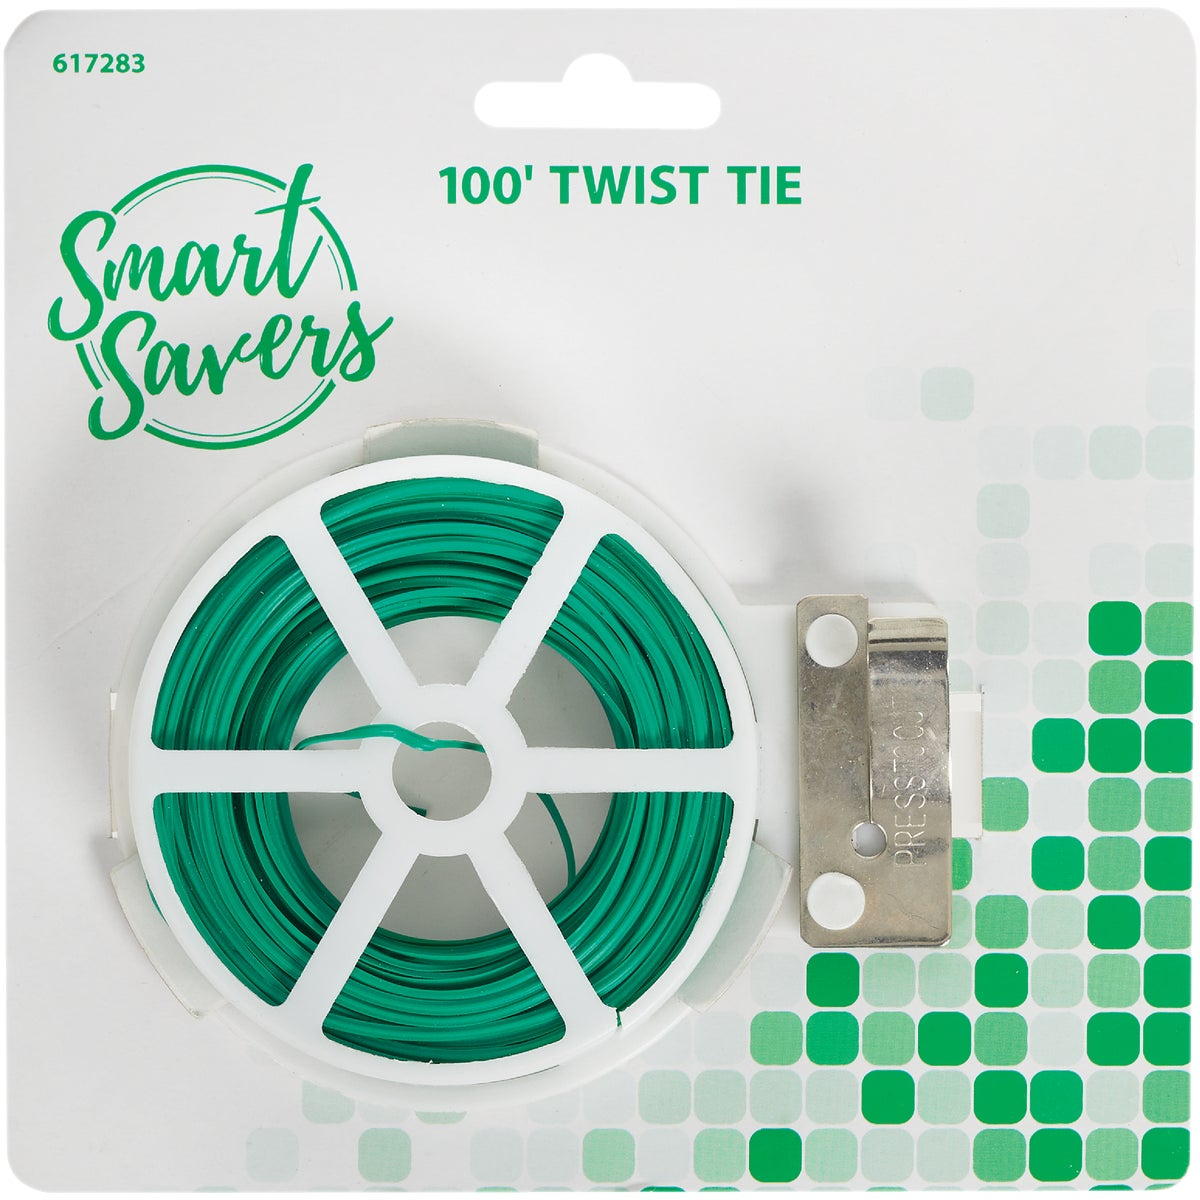 100' TWIST TIE - BT029 by Do it Best